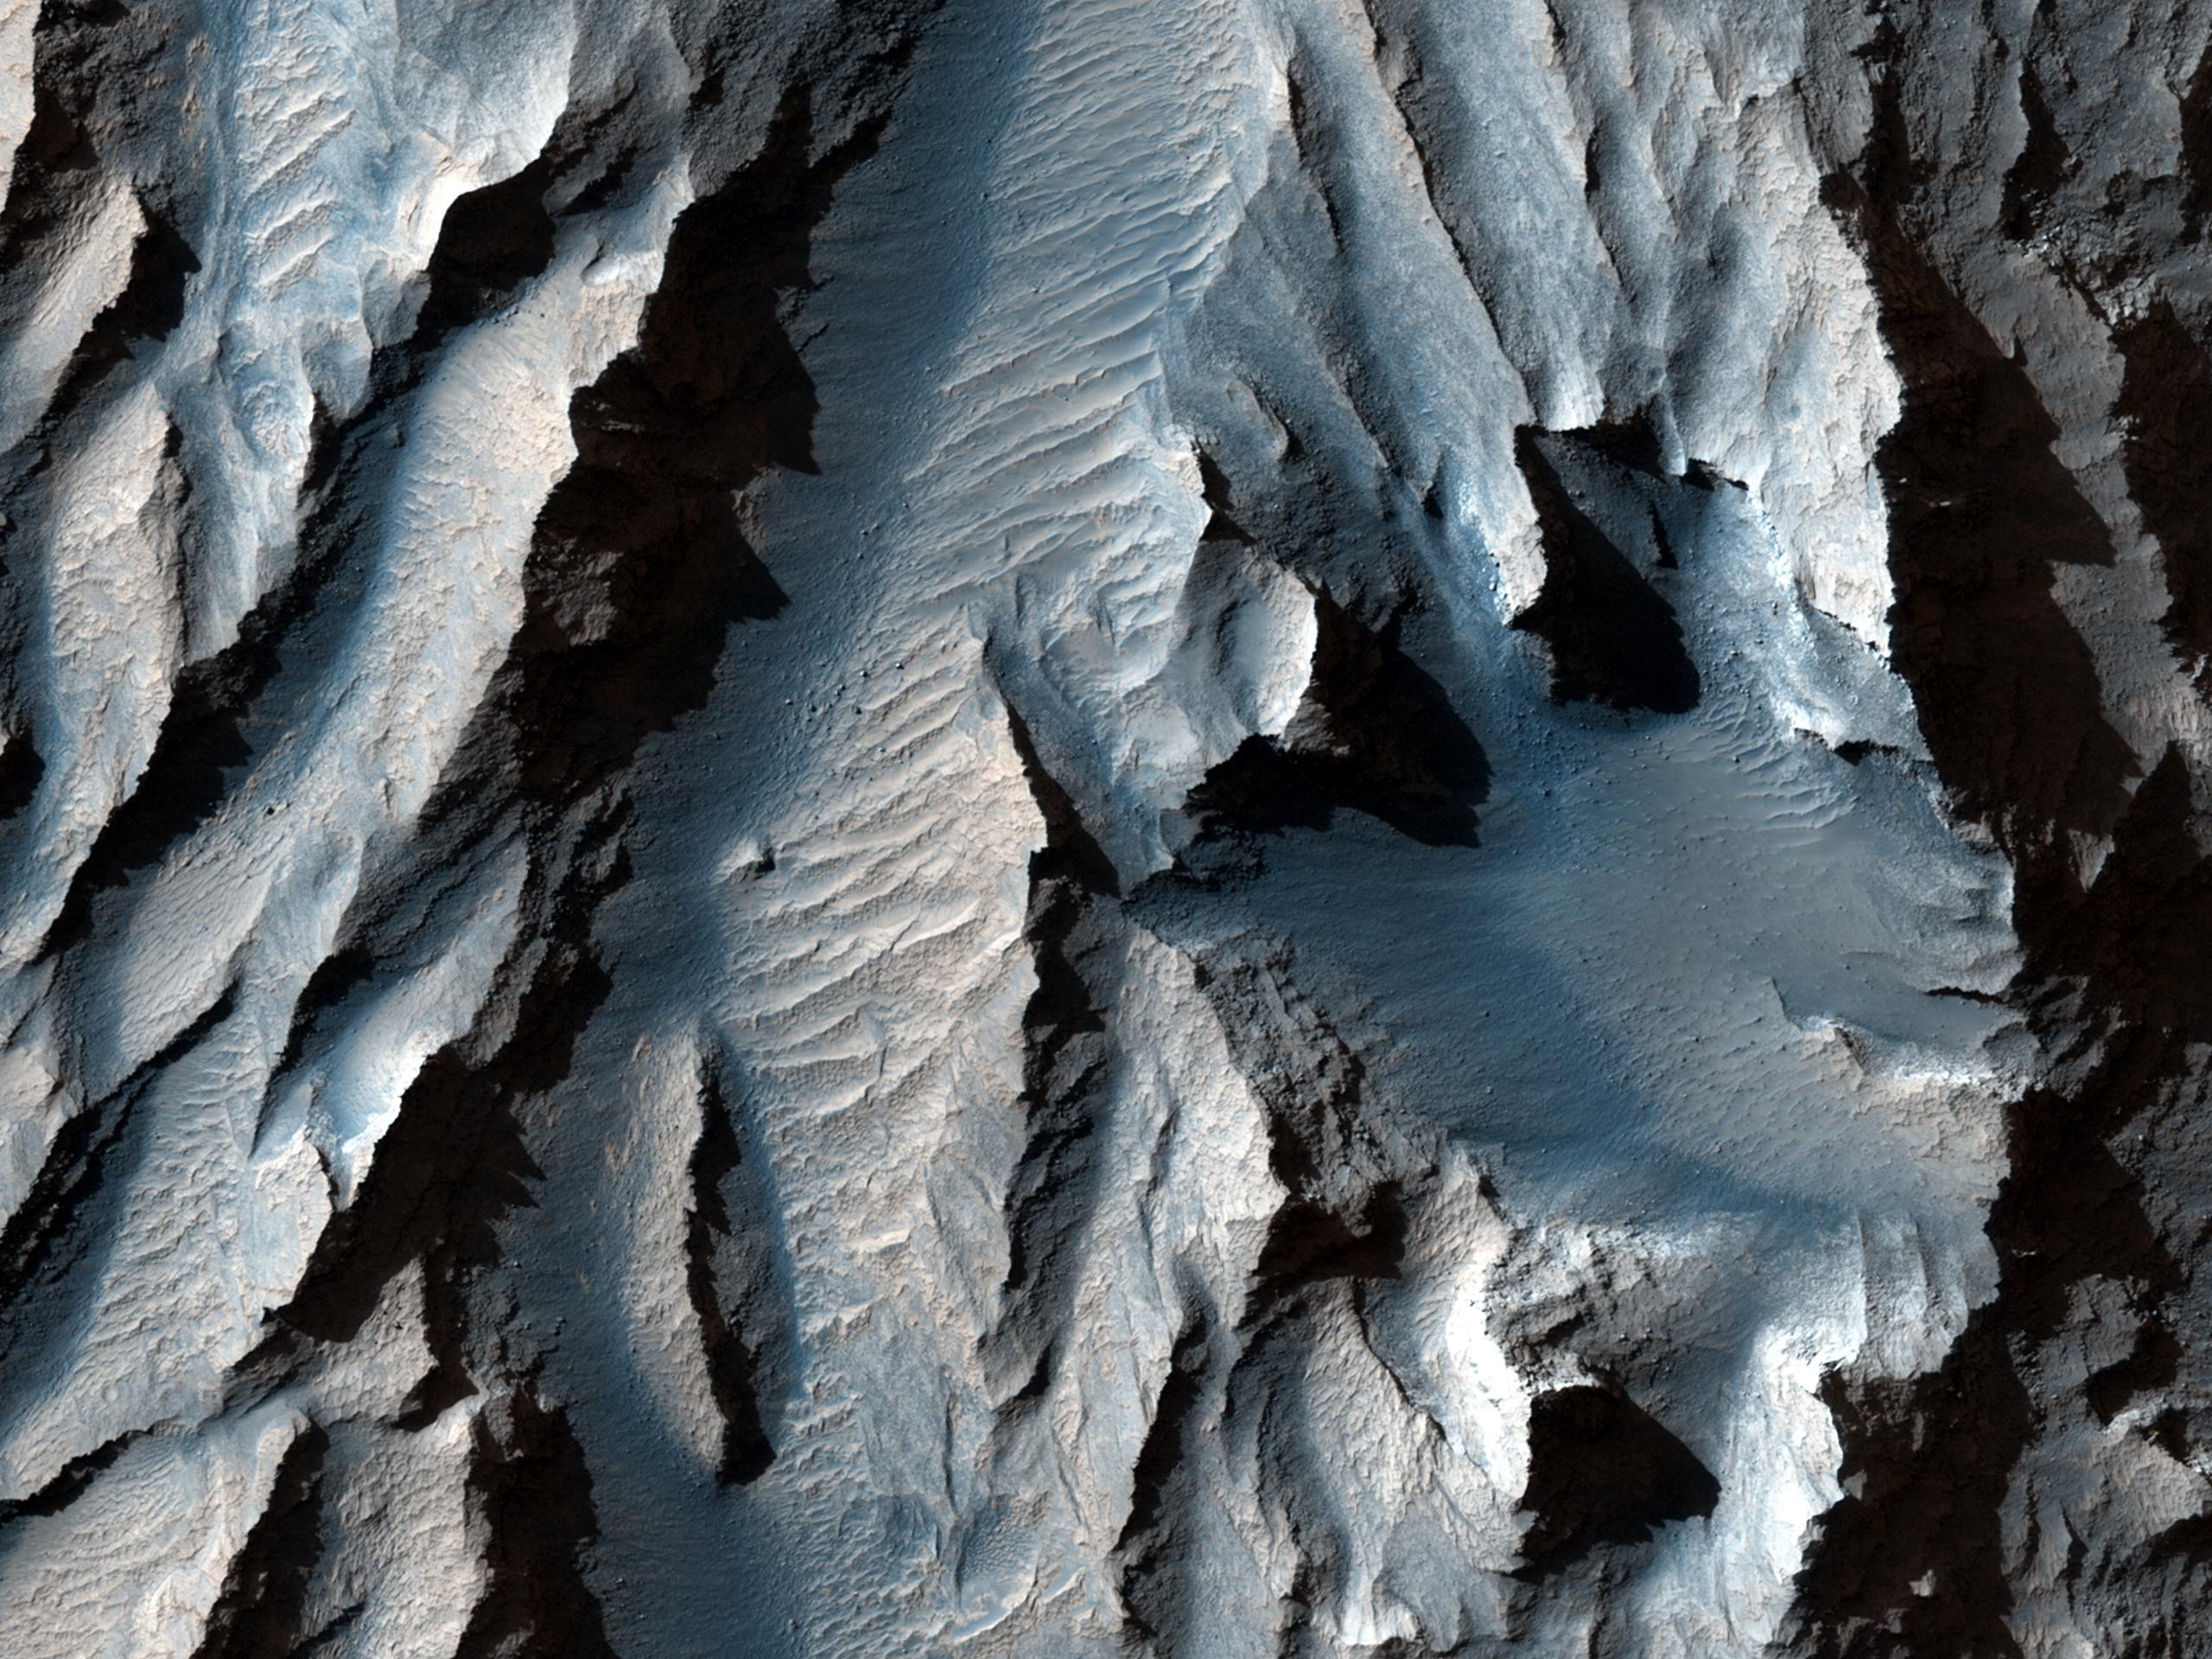 Space Images   The Obliquity of Mars (Periodic Bedding in Tithonium Chasma)